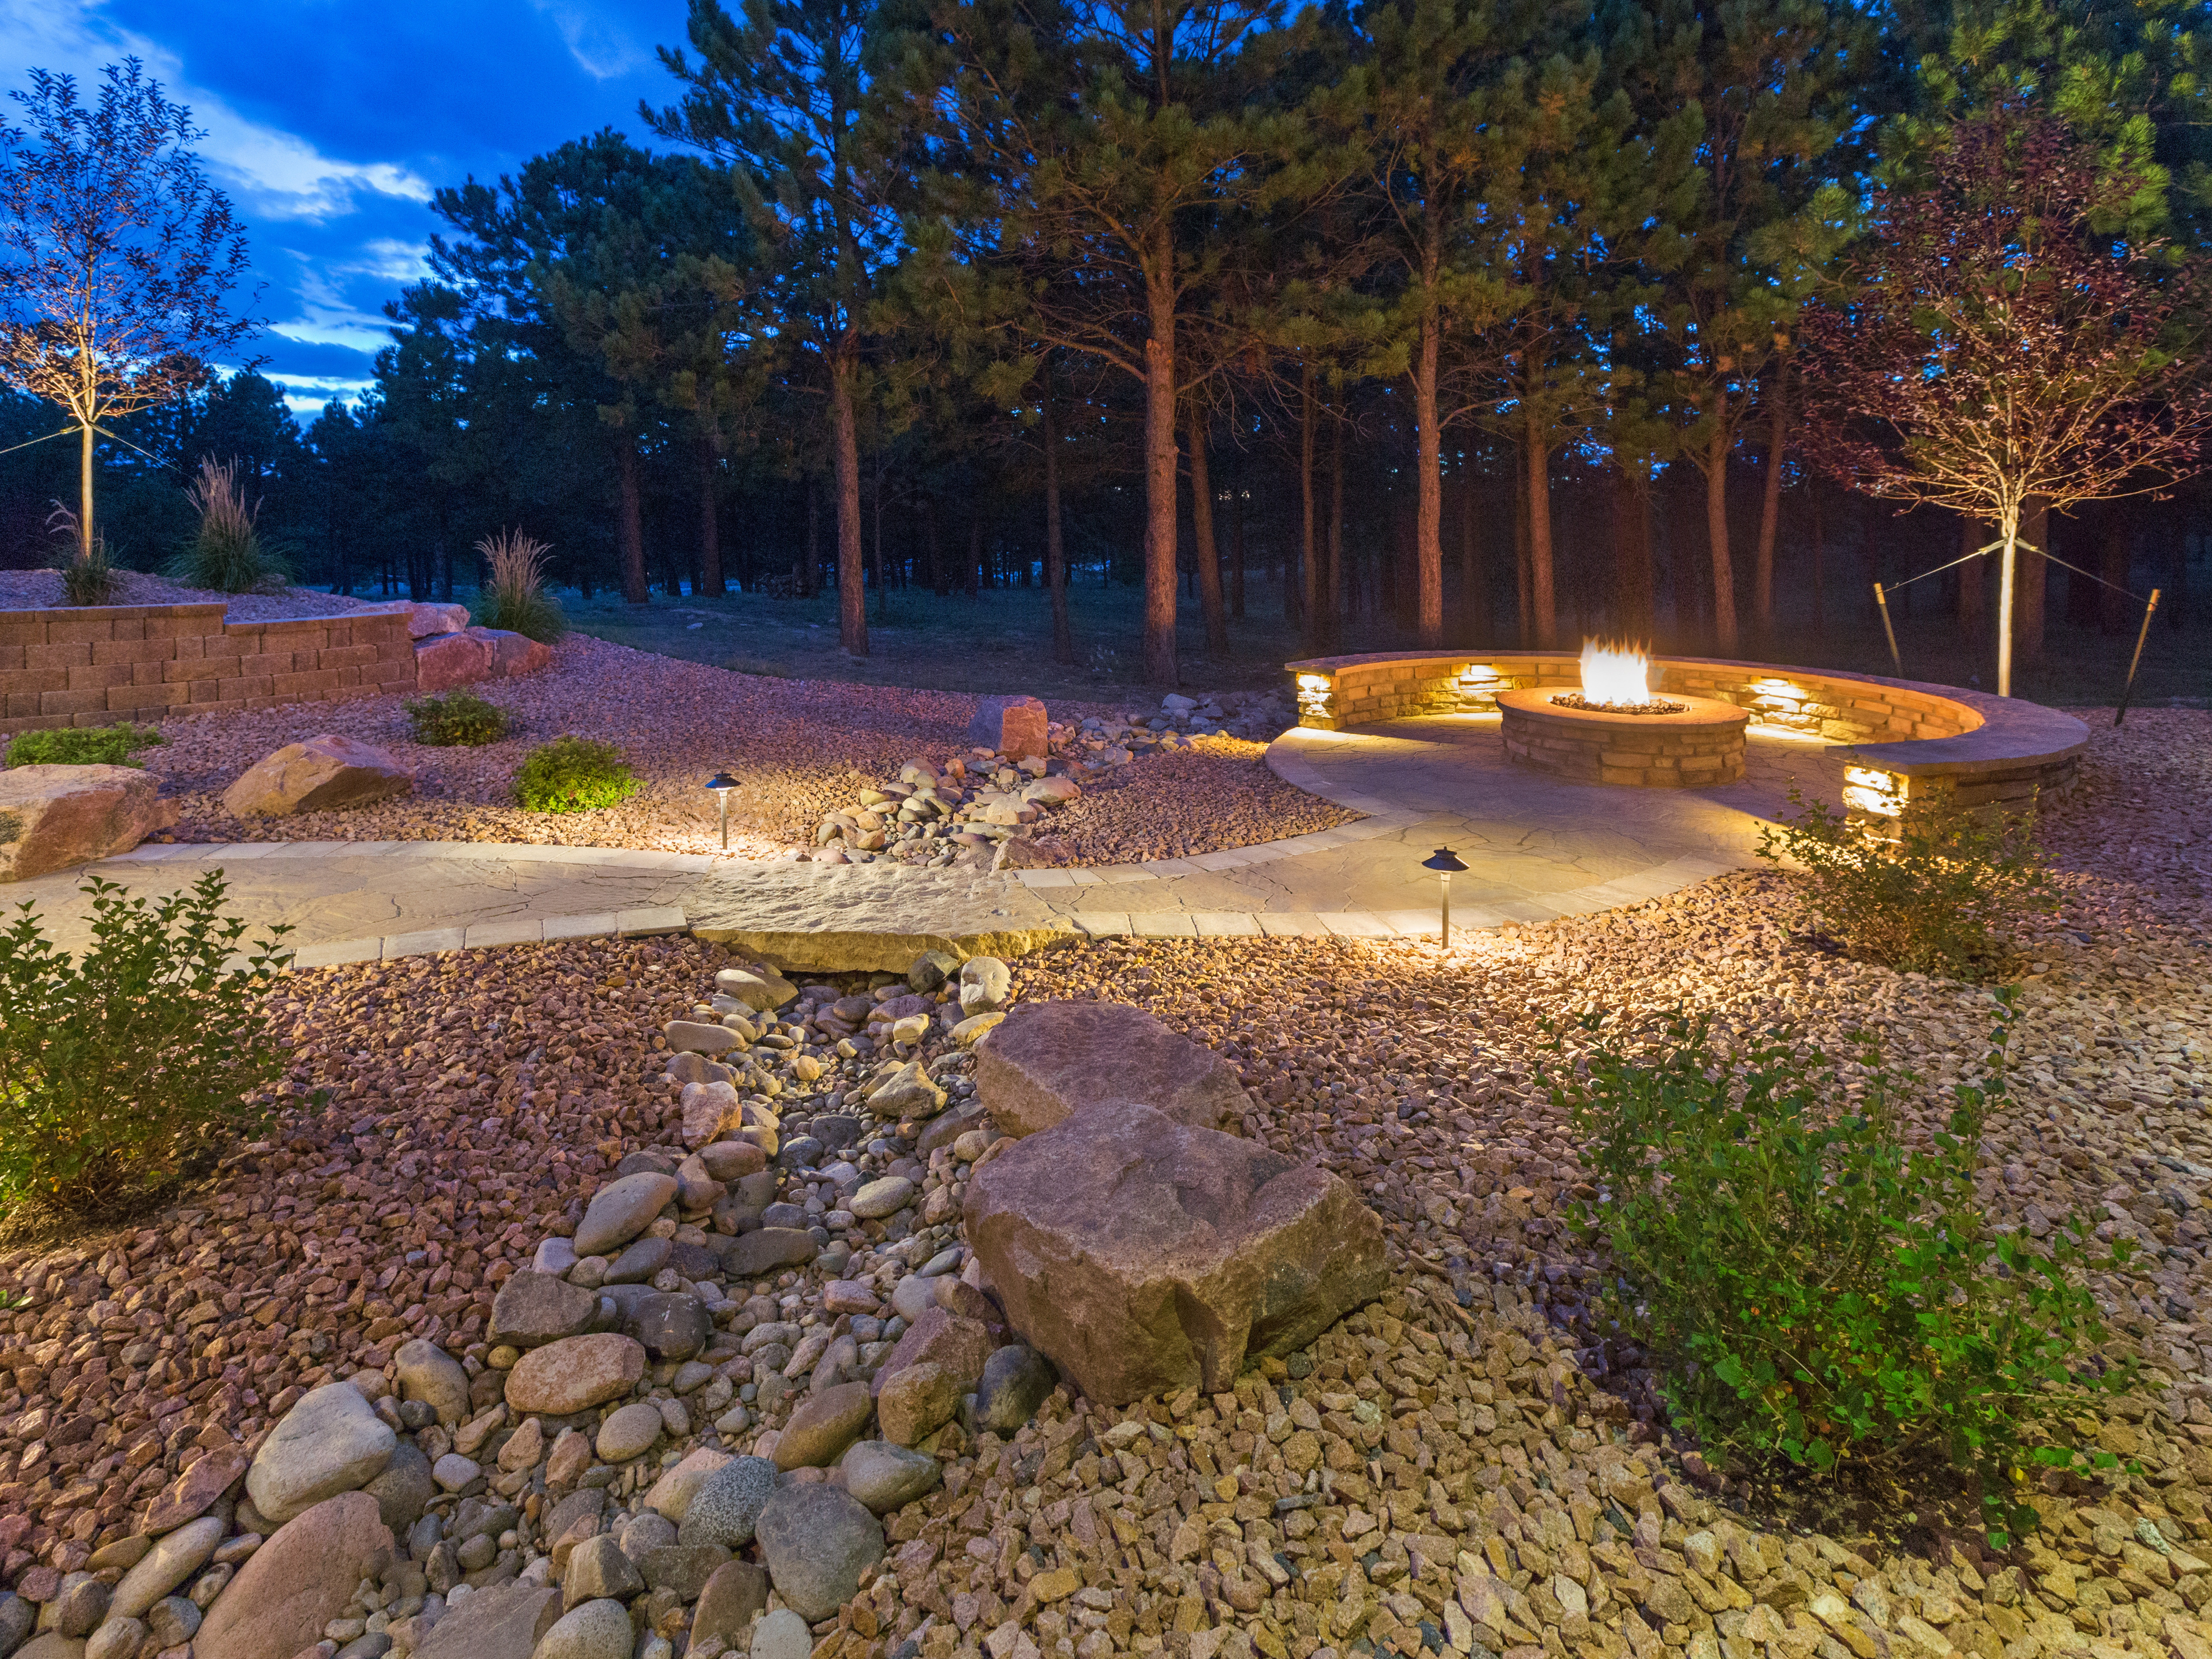 Dry creek bed with cobble stones and boulders